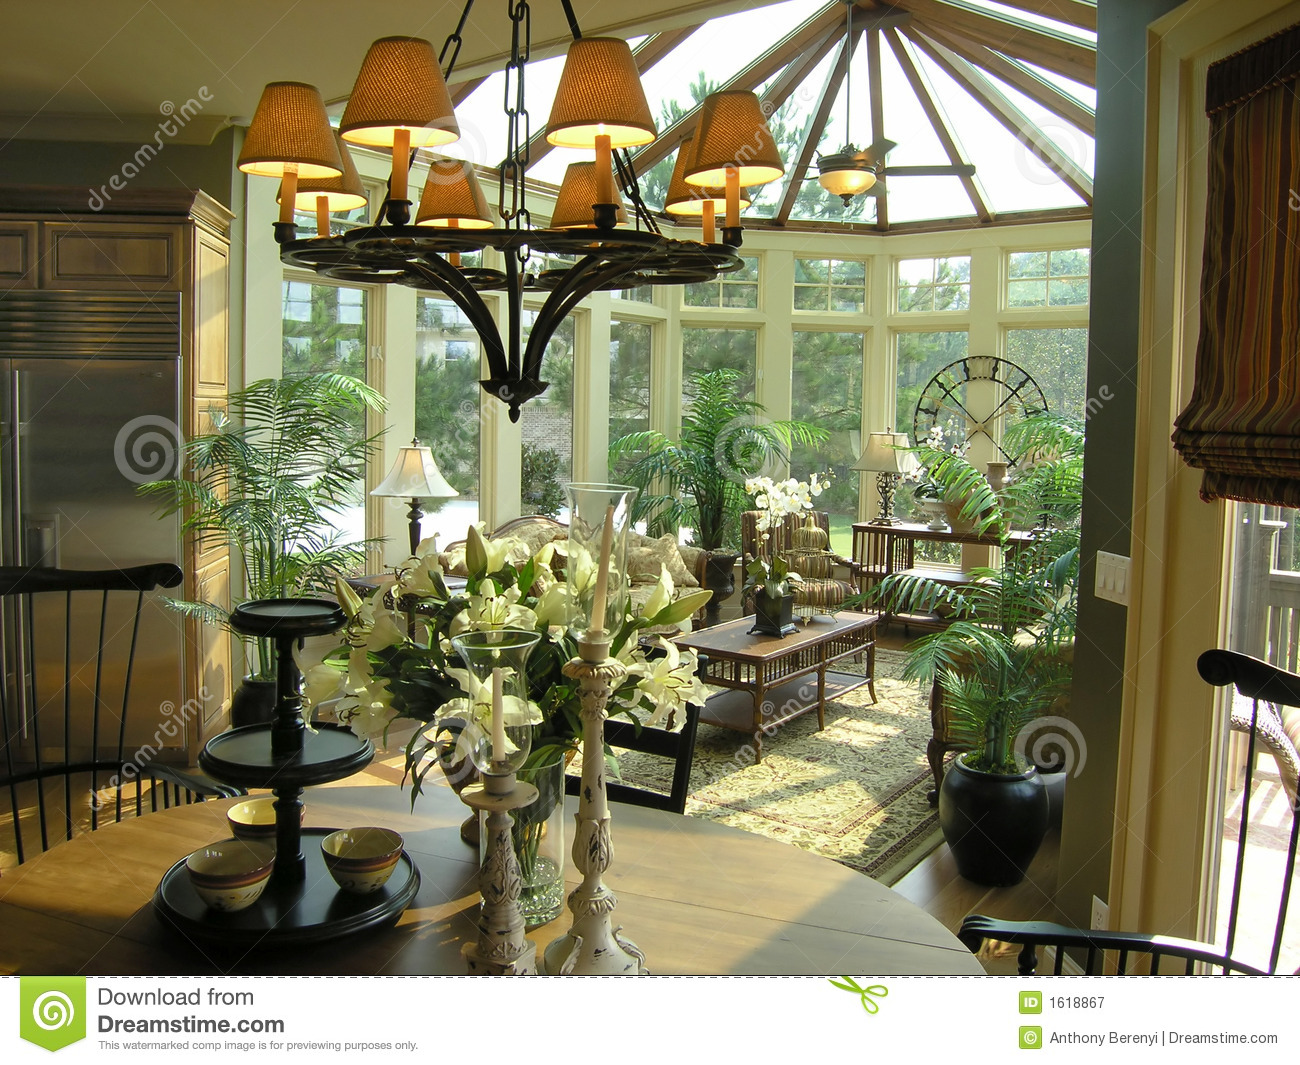 Luxury 21 sun room stock image image of pretty inside 1618867 - Amazing image of sunroom interior design and decoration ...